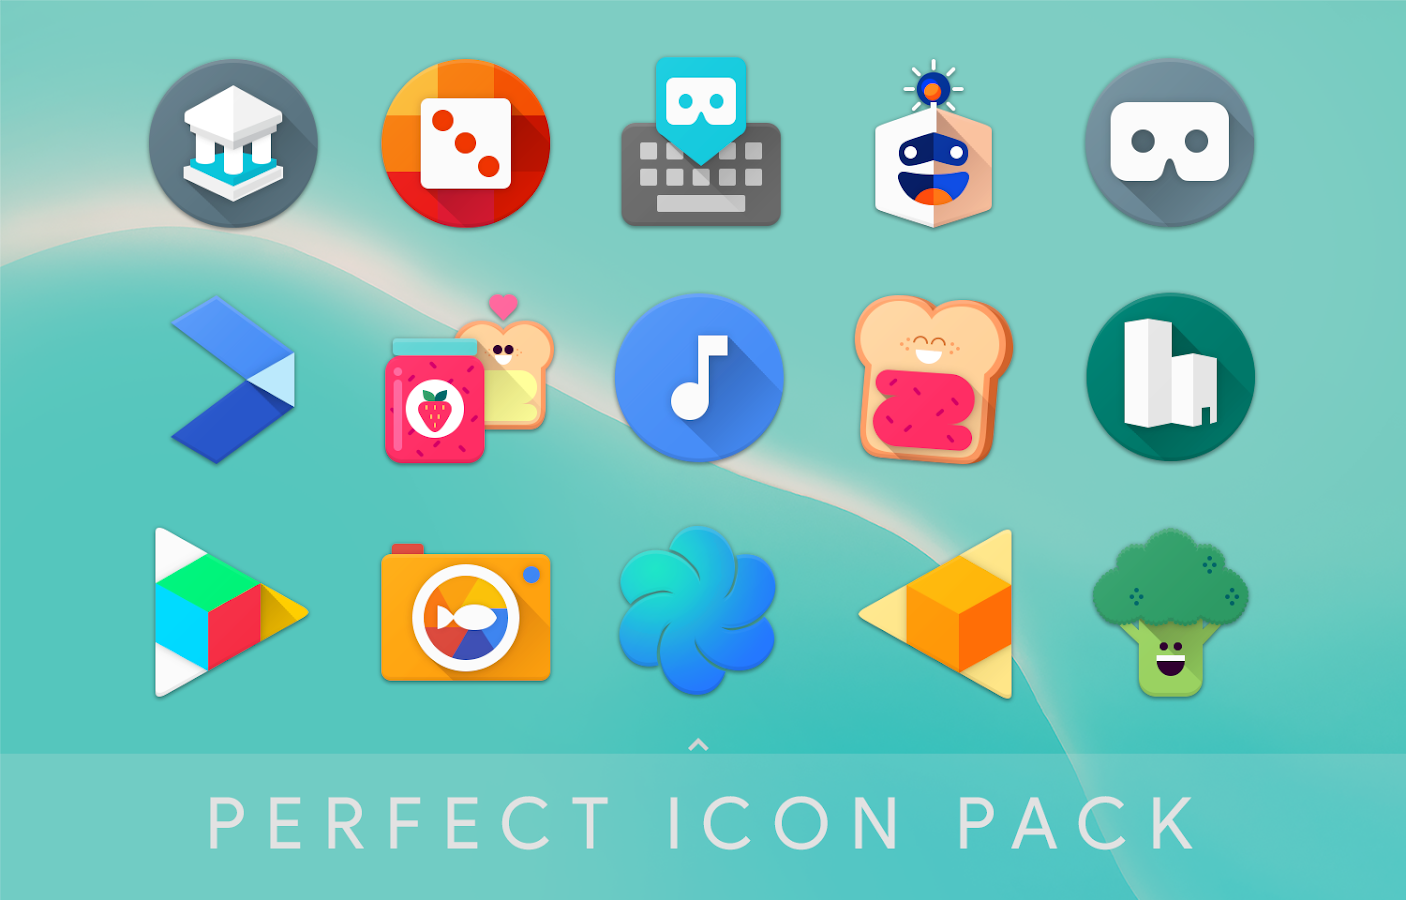 Perfect Icon Pack Screenshot 0